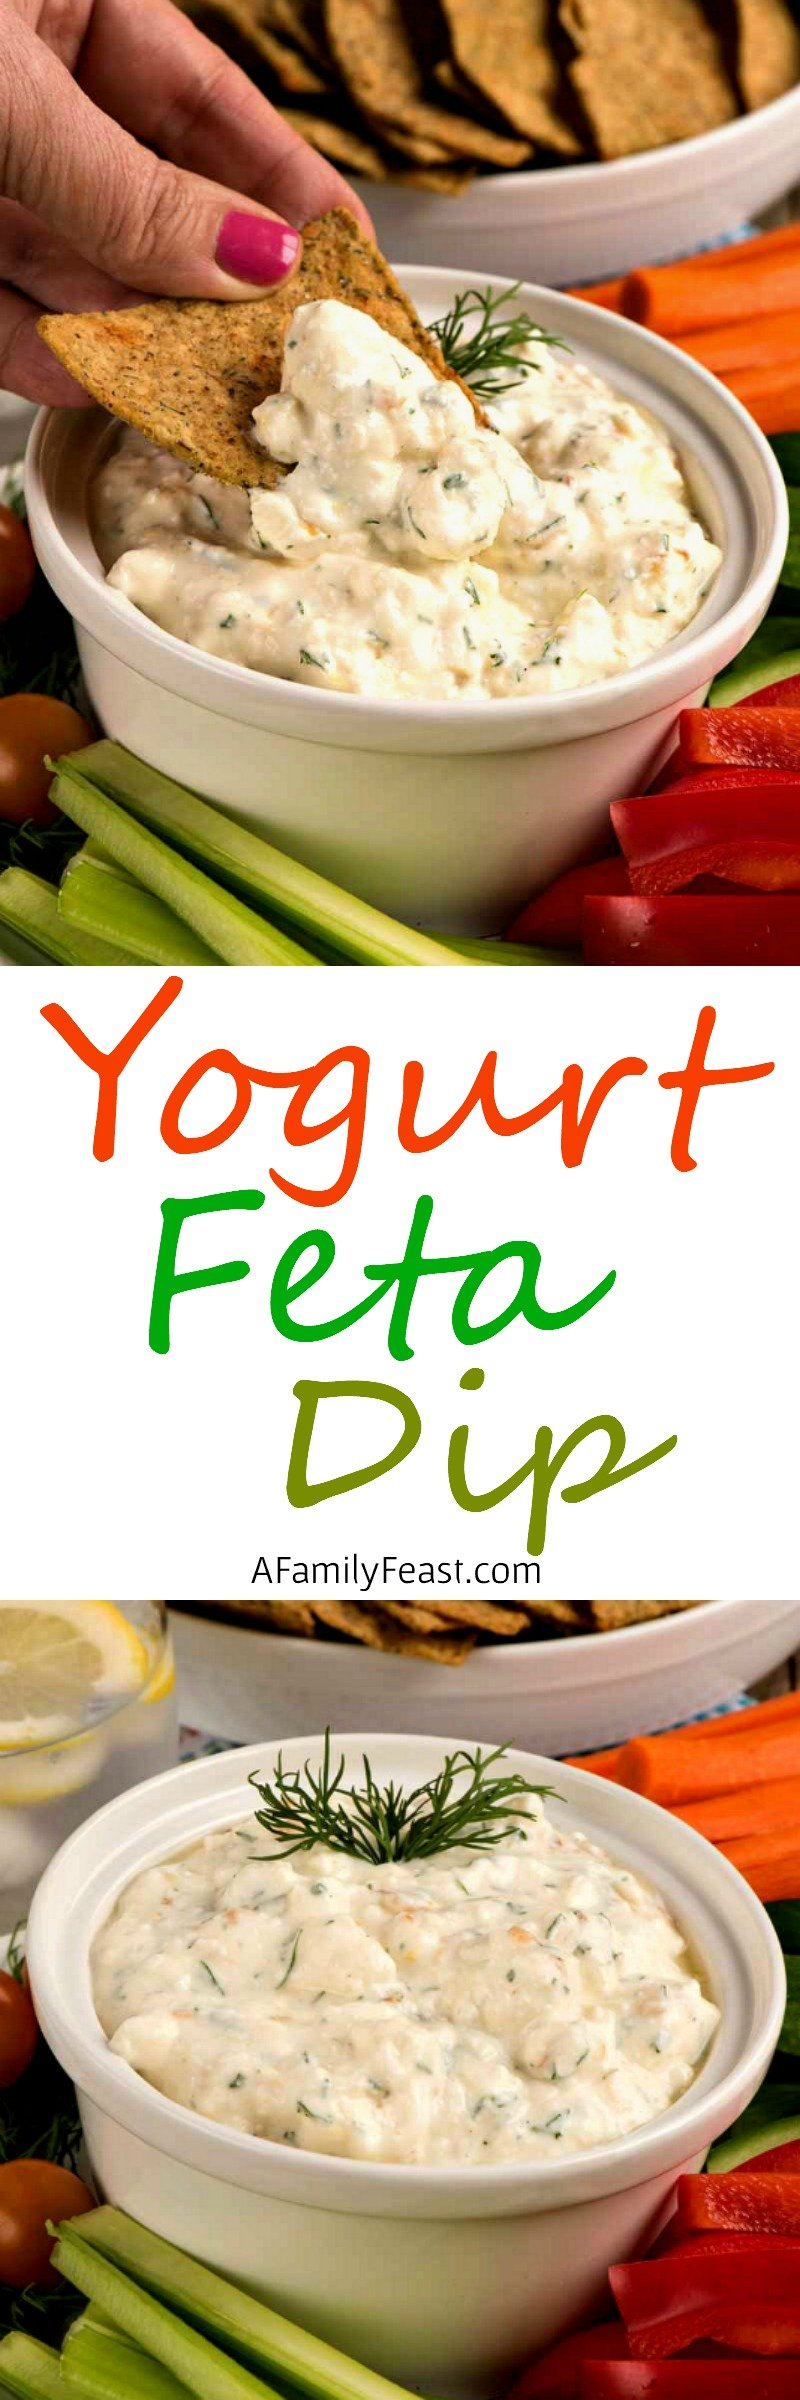 Yogurt and Feta Dip - This creamy healthy dip is easy to make and is delicious served with chips or veggies.